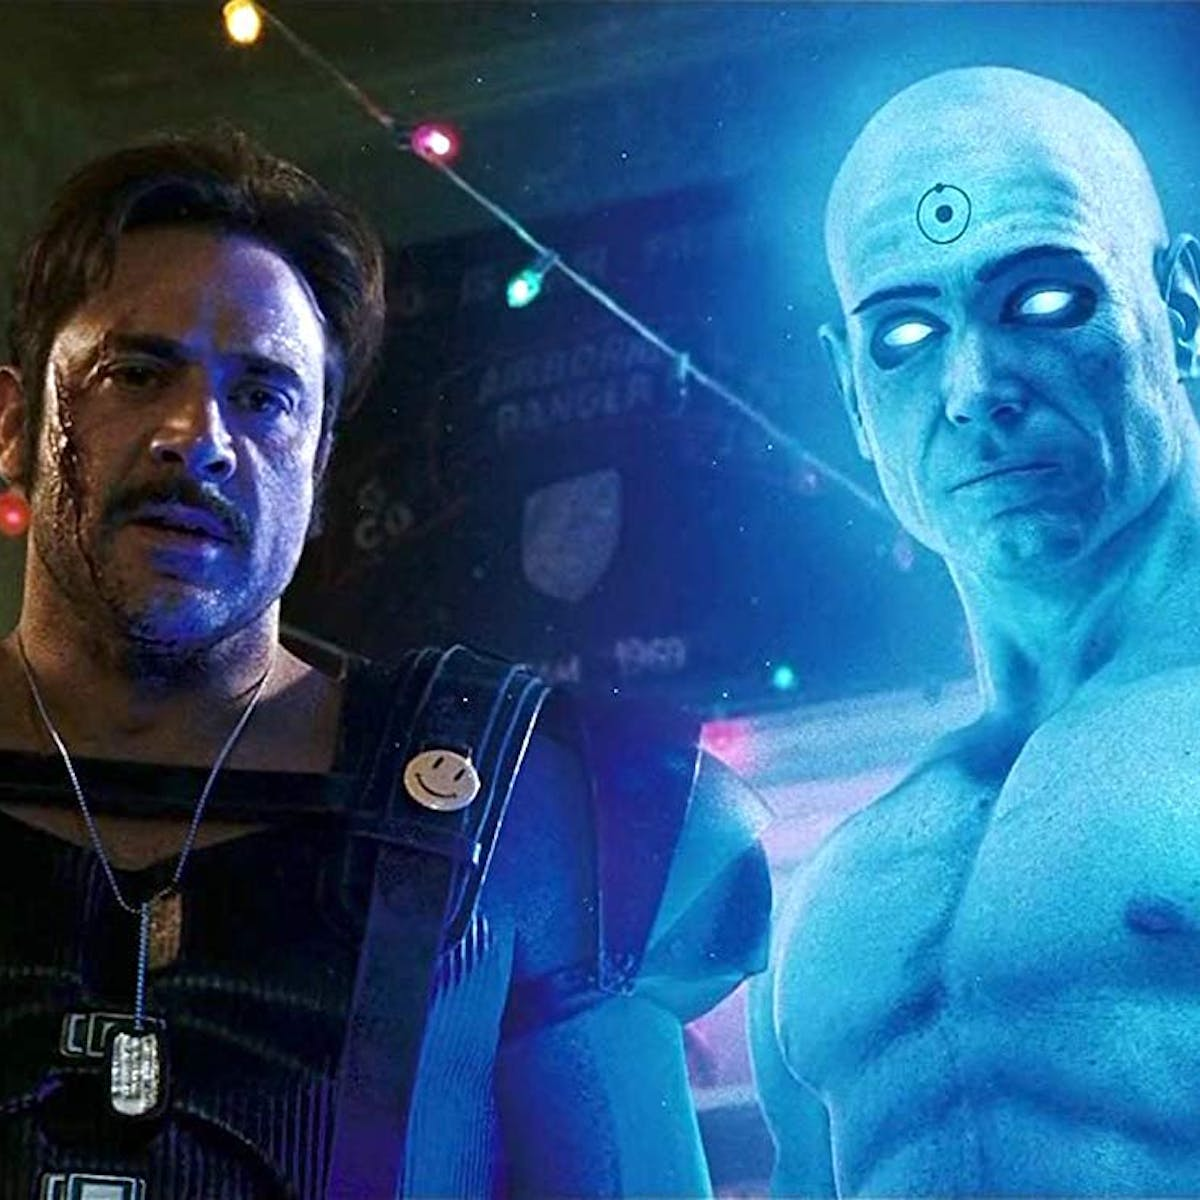 'Watchmen' HBO Series: Release Date, Trailer, Cast and Everything to Know